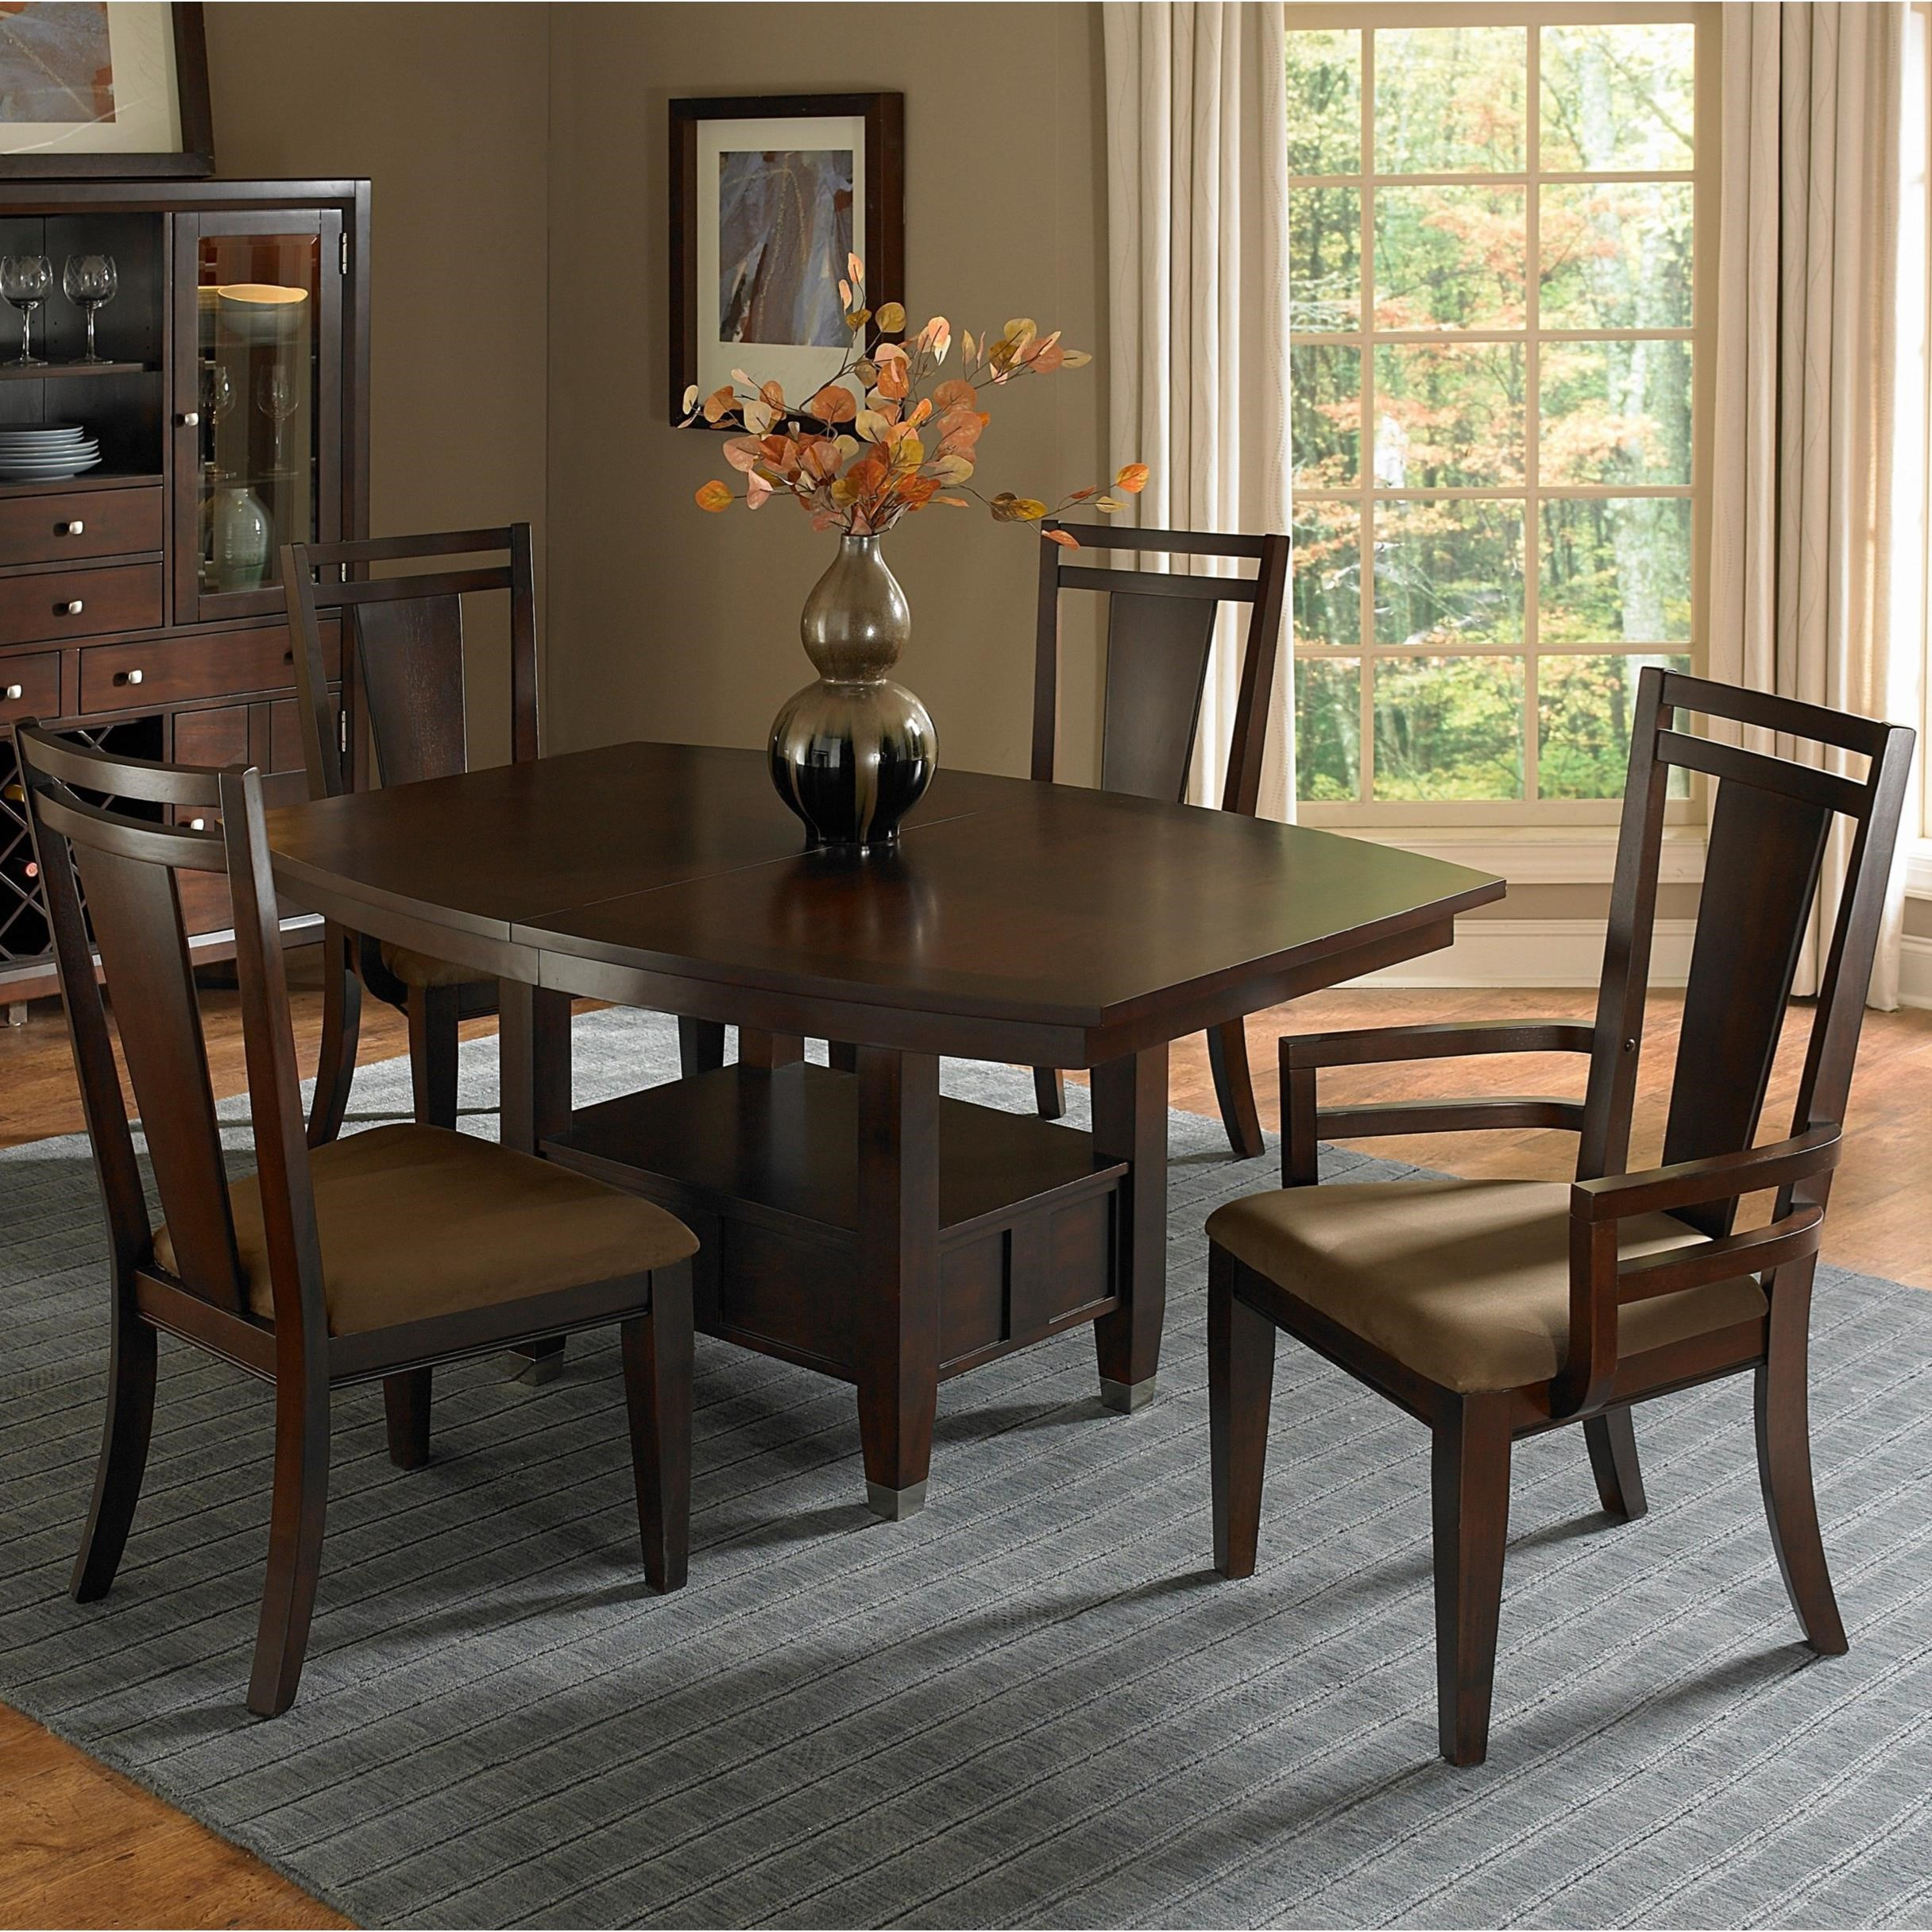 Broyhill Furniture Northern Lights 5 Piece Table and Chair Set - Item Number: 5312-31+50+2x80+2x81